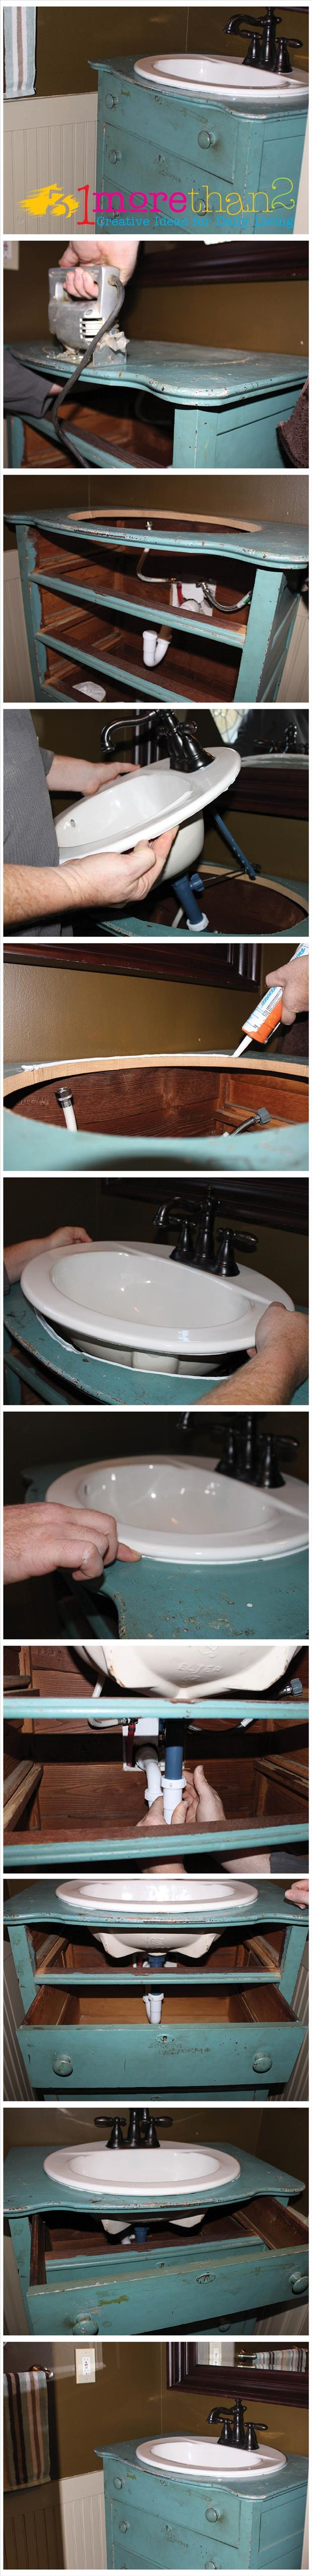 make a bathroom sink out of an old dresser